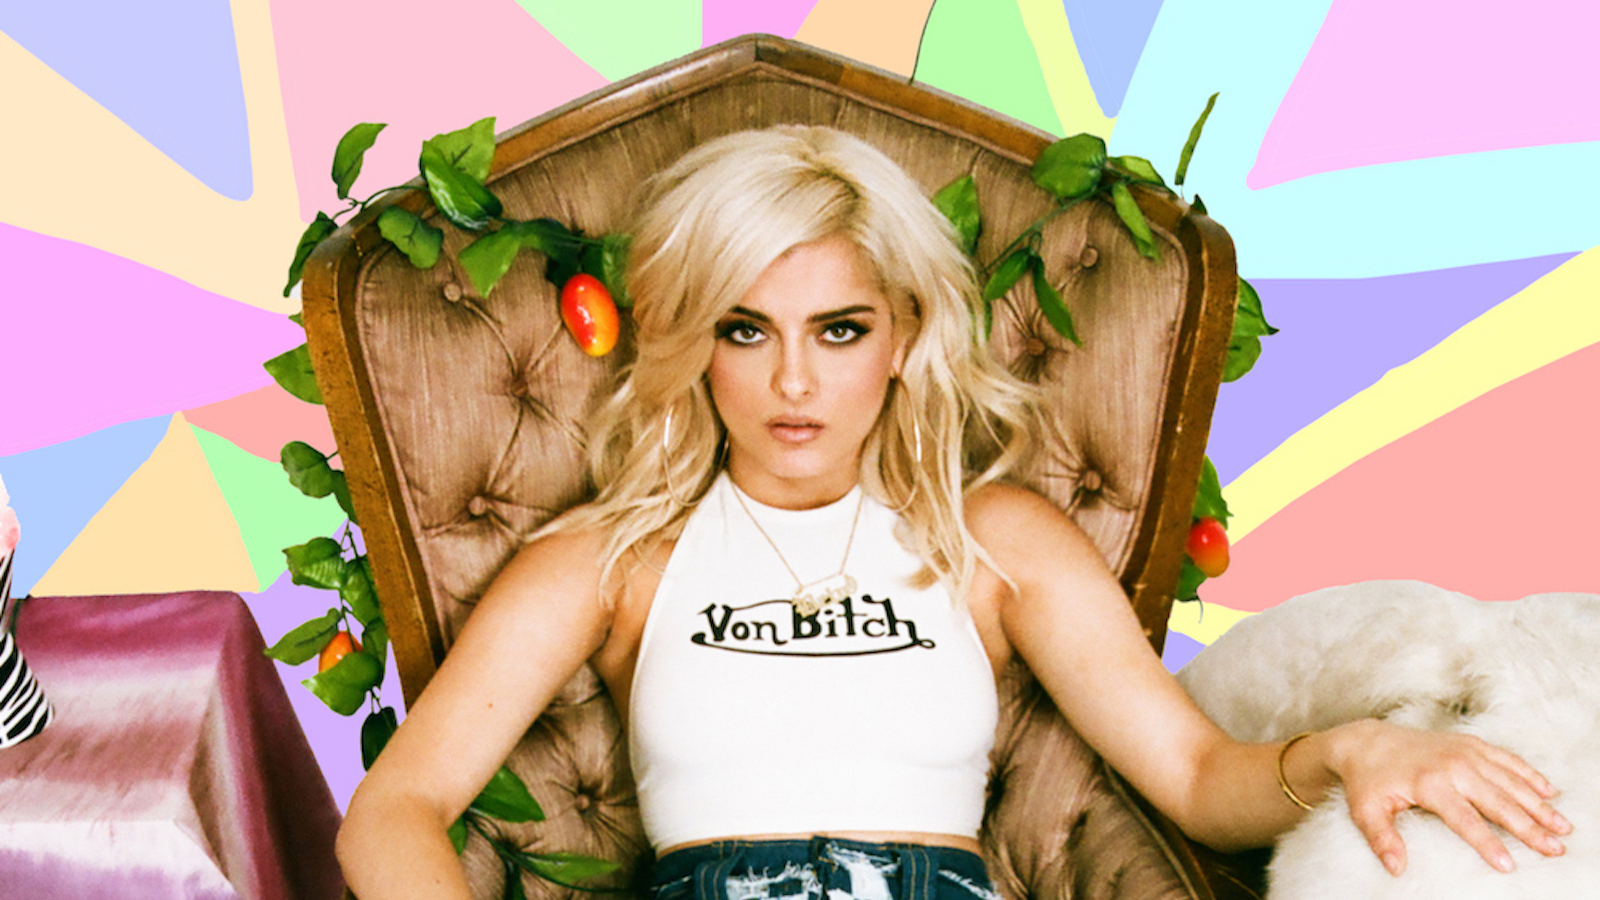 Boy And Girl Cartoon Wallpaper Bebe Rexha Doesn T Want To Act More Feminine Thanks Galore